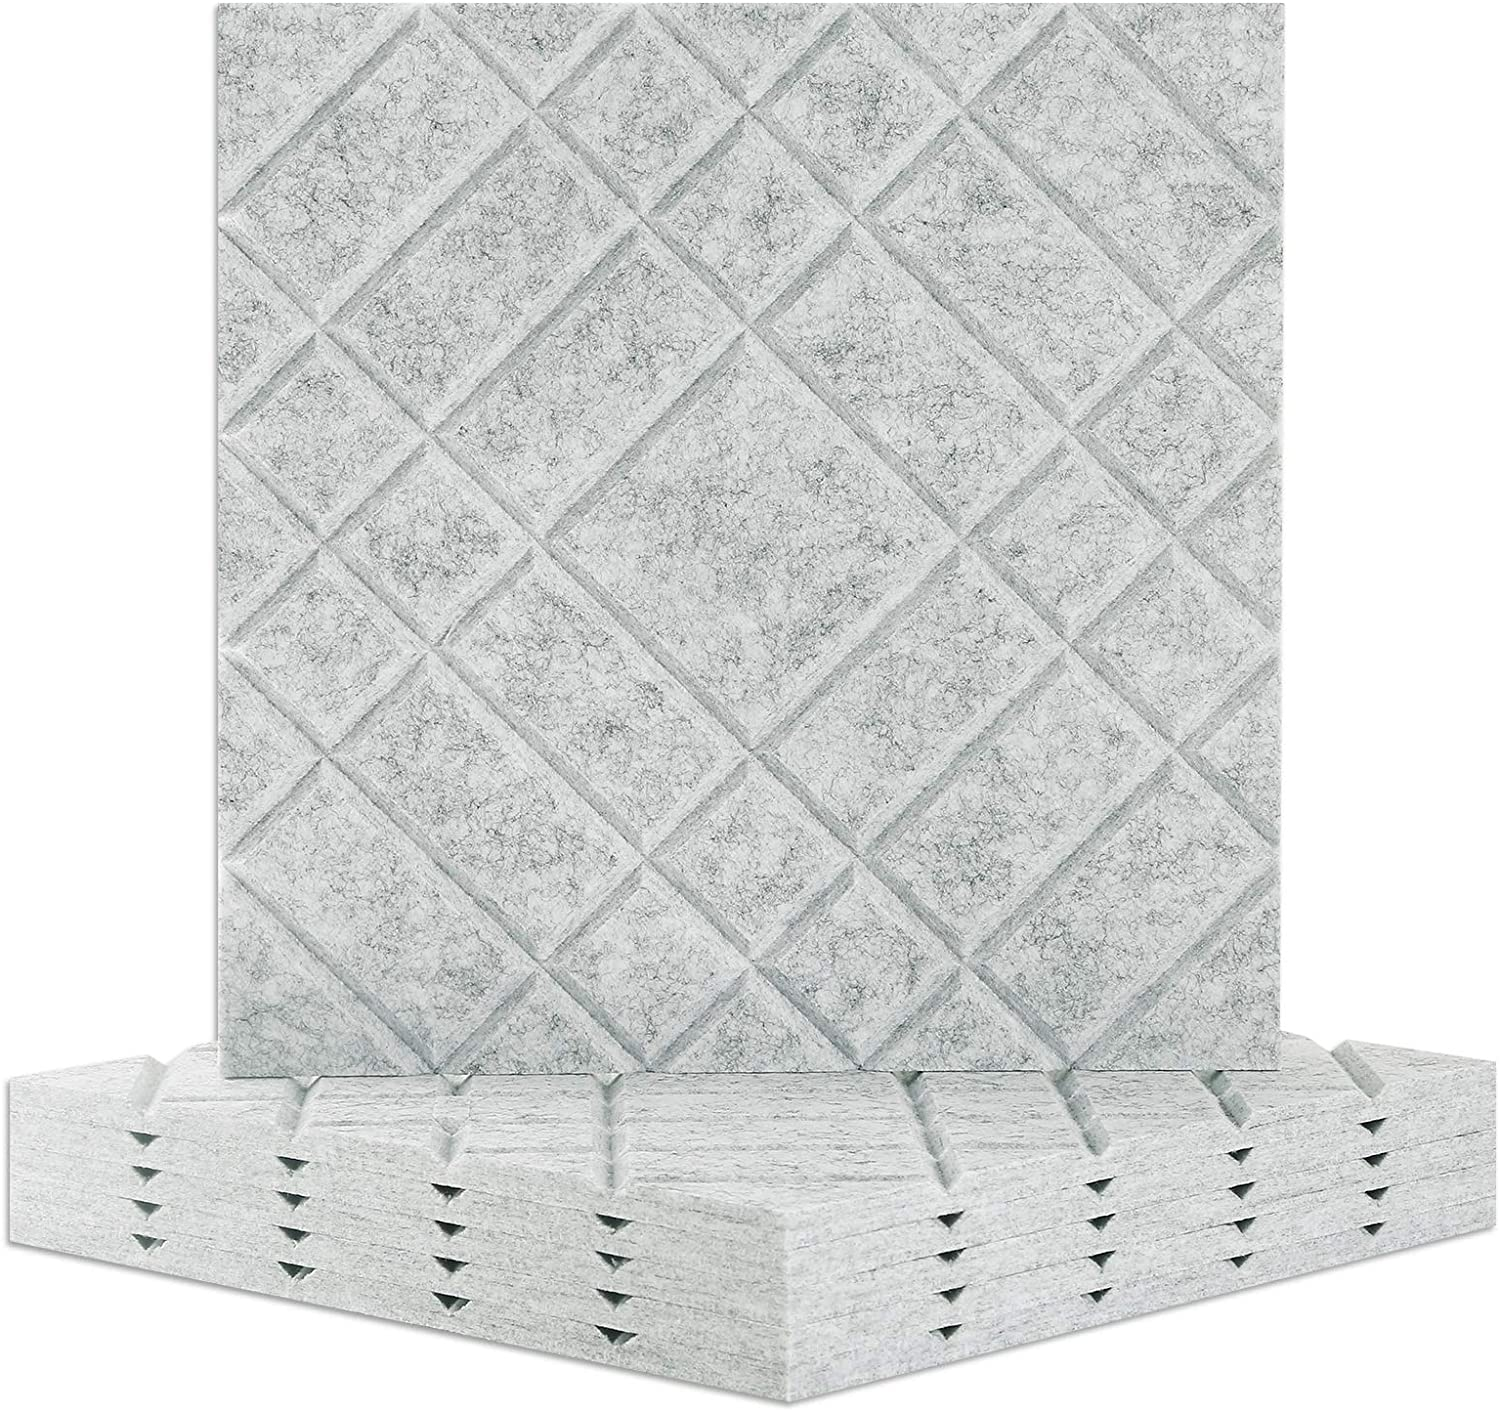 BUBOS 3D Acoustic Panels,Line Carving Exclusive Design Sound Proof Padding Decorative Wall Tiles, For Acoustic Treatment、Studio Home and Office,12'' X 12'' X 0.4'', 6 Pcs (3D Line-2, Grey)